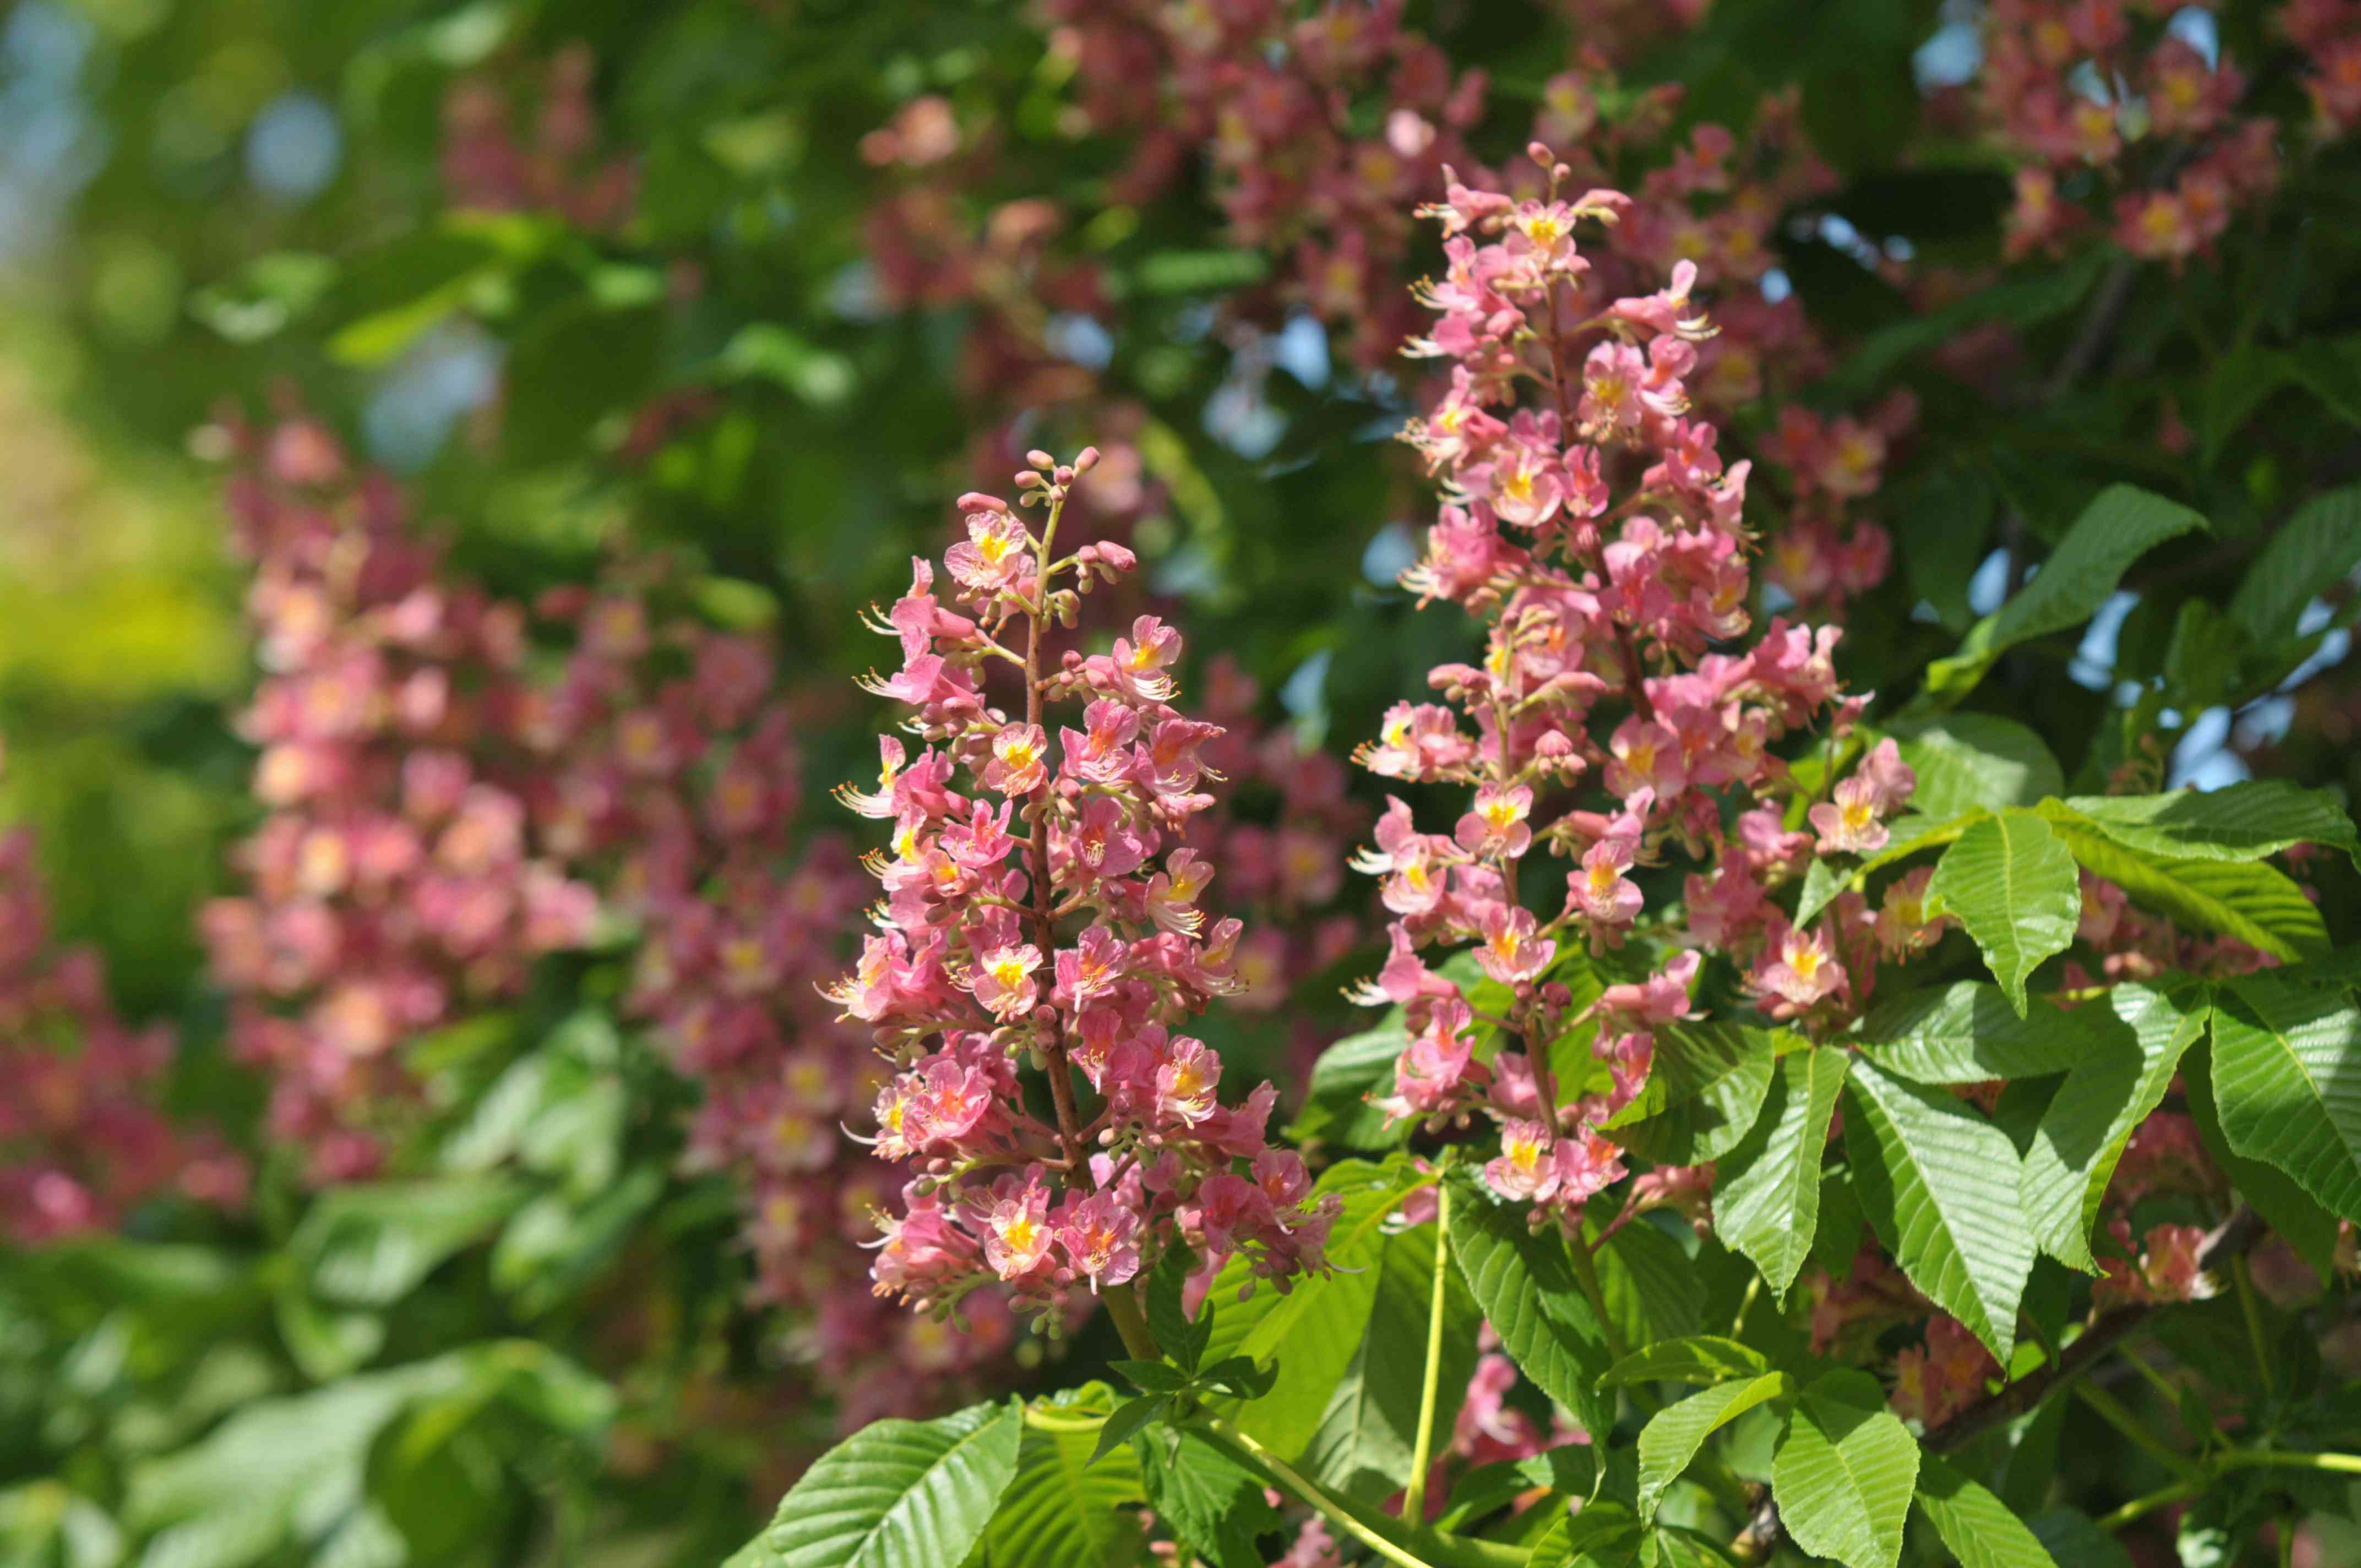 Red buckeye plant with light pink and yellow flower spikes on branches in sunlight